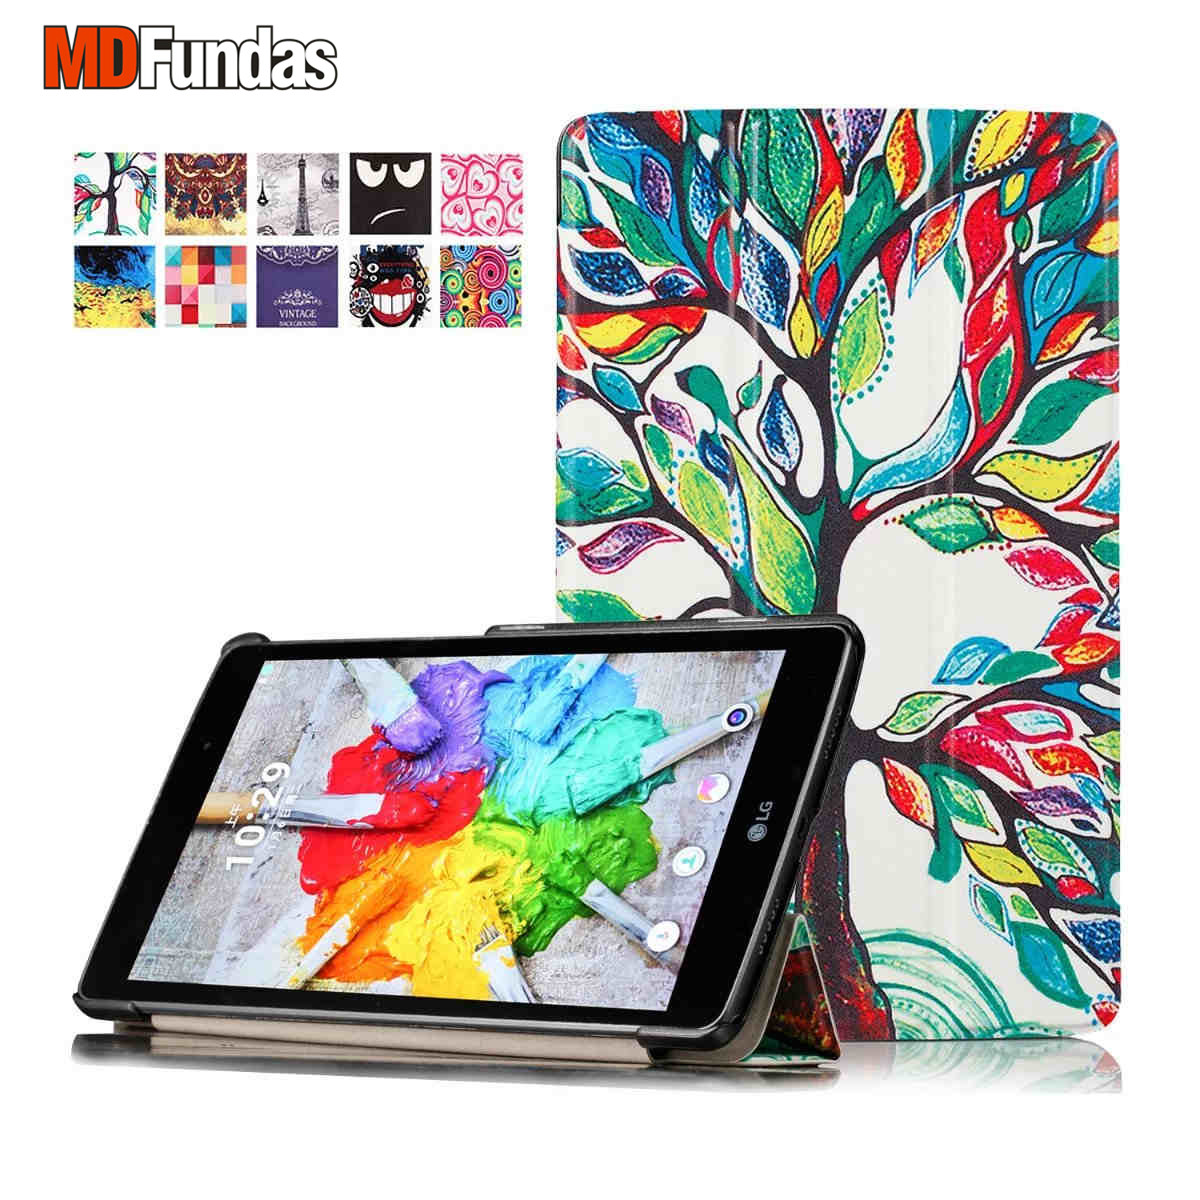 MDFUNDAS For LG G Pad III 8.0 V525 / G Pad X 8.0 V520 V521 Tablet Case Colorful Printing Cover Flip PU Leather Coque Stand Skin